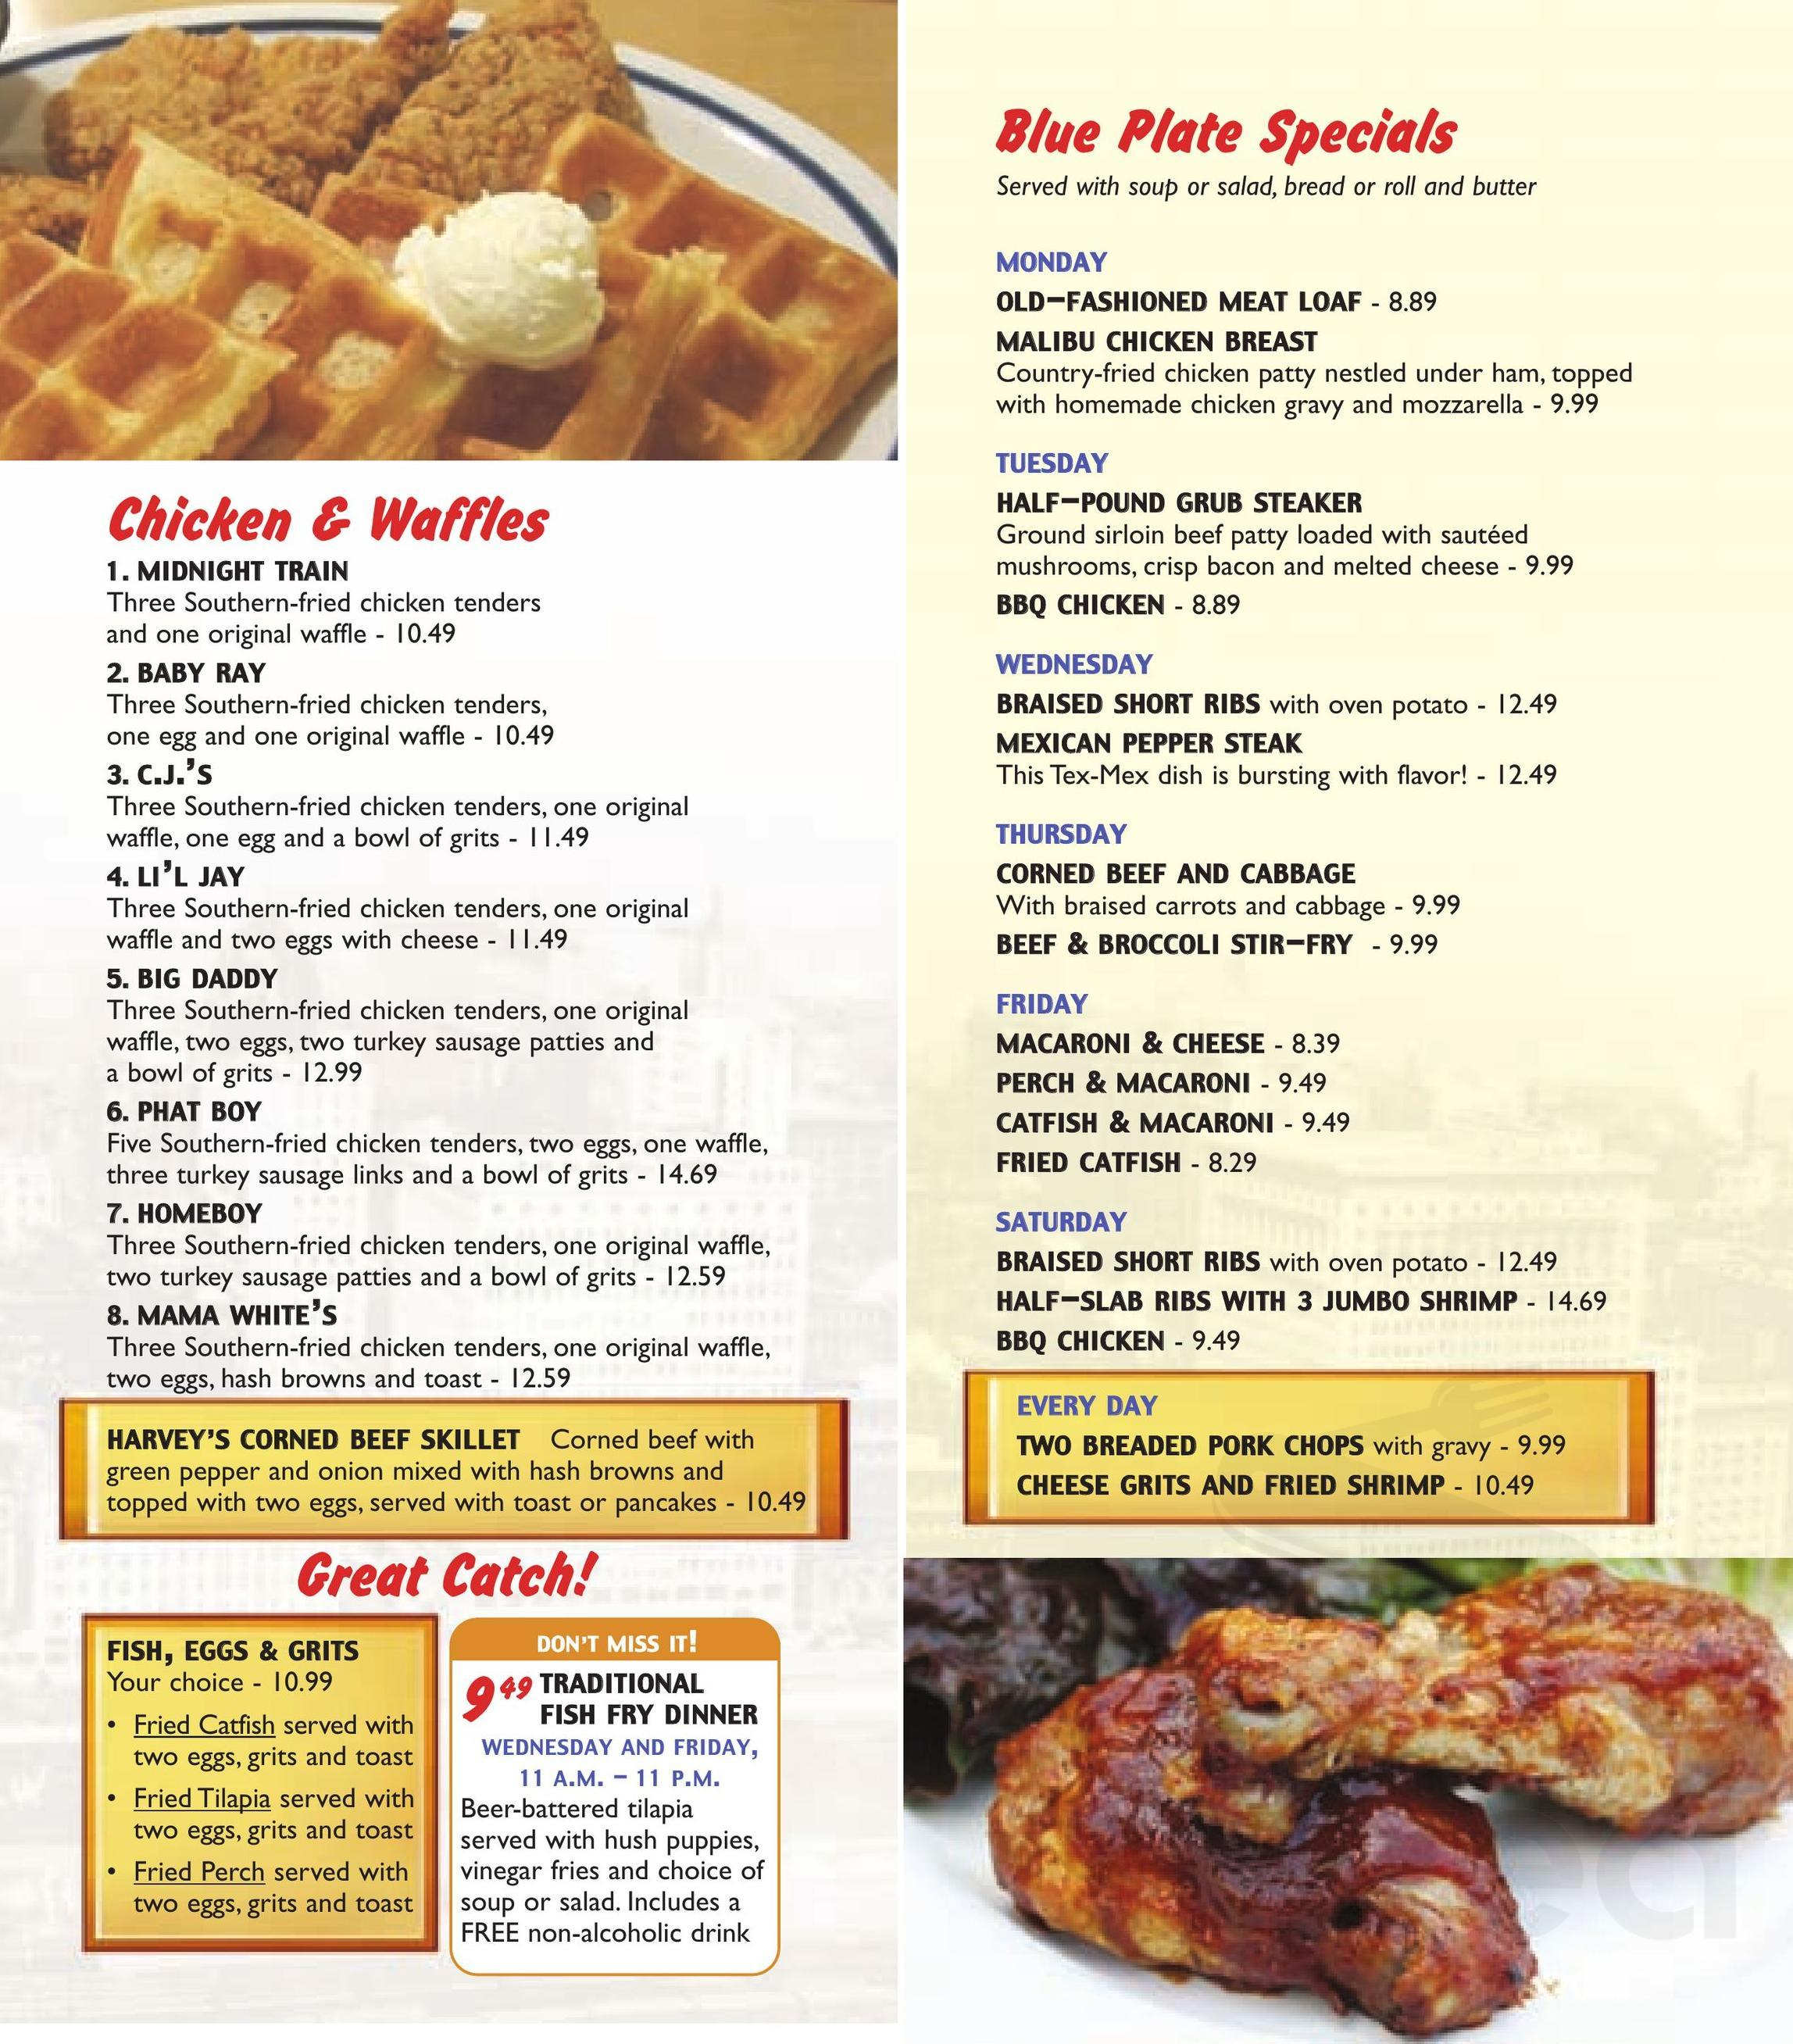 Menu for White Palace Grill in Chicago, Illinois, USA